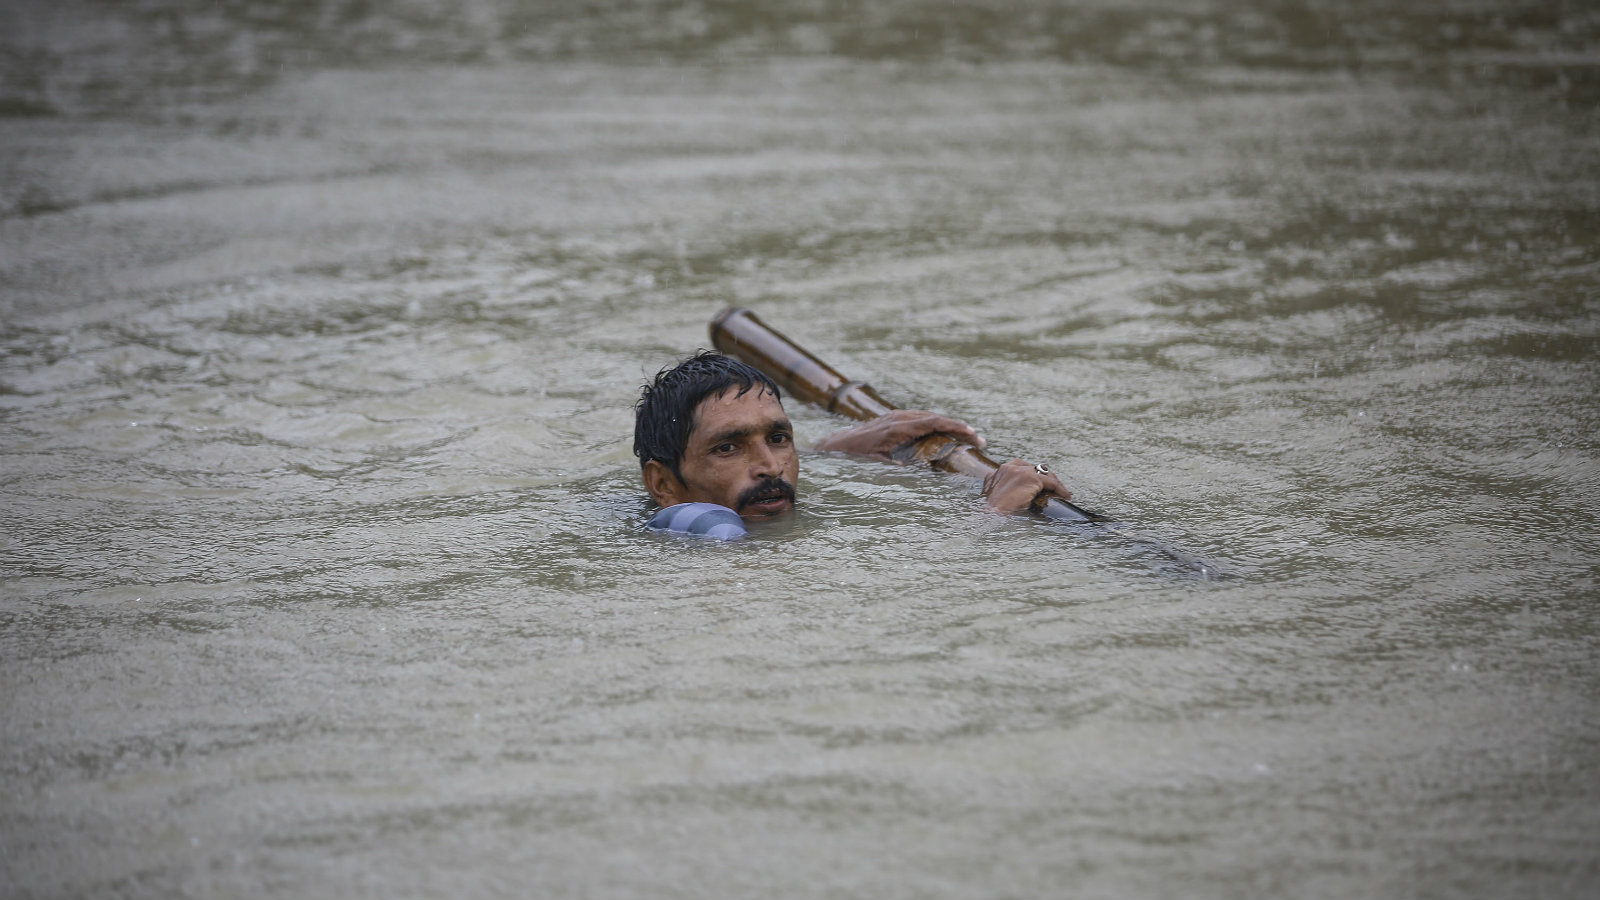 A man tries to cross flood water at Topa village in Saptari district, Nepal, 12 August 2017. According to media reports, nearly 18 people have died and thousands have been affected by floods as the Department of Hydrology and Meteorology warned of heavy rains for two days.